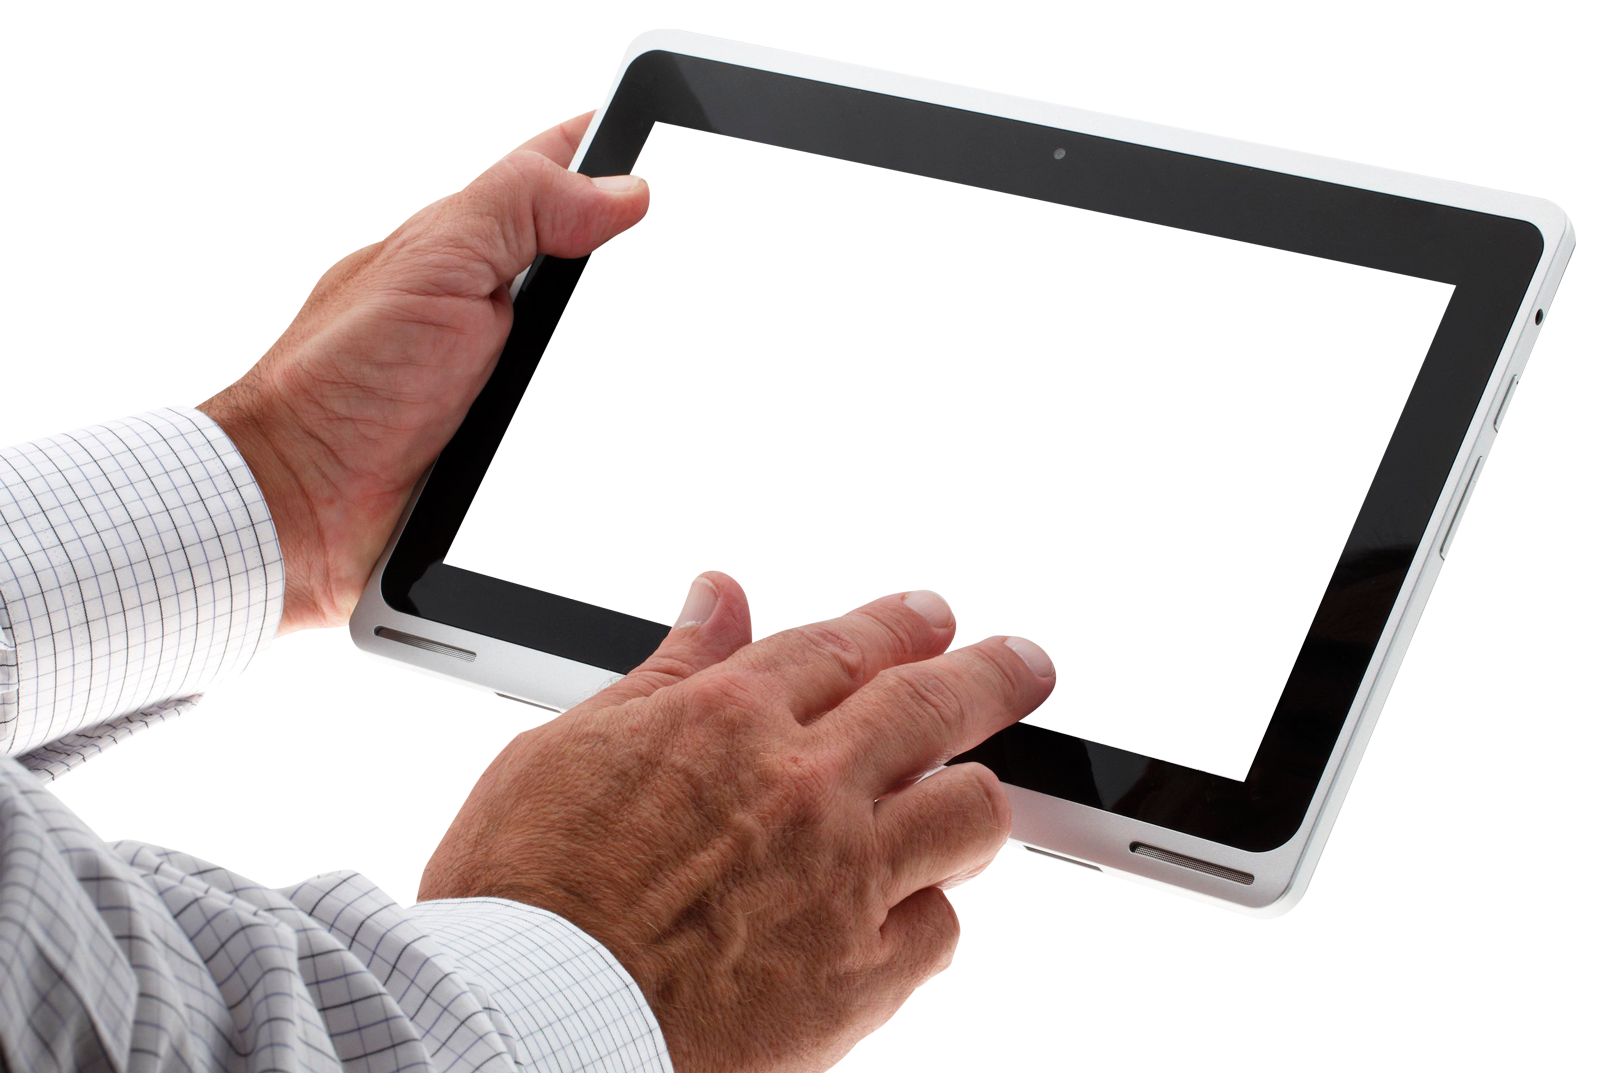 Png tablet. Hand using image purepng